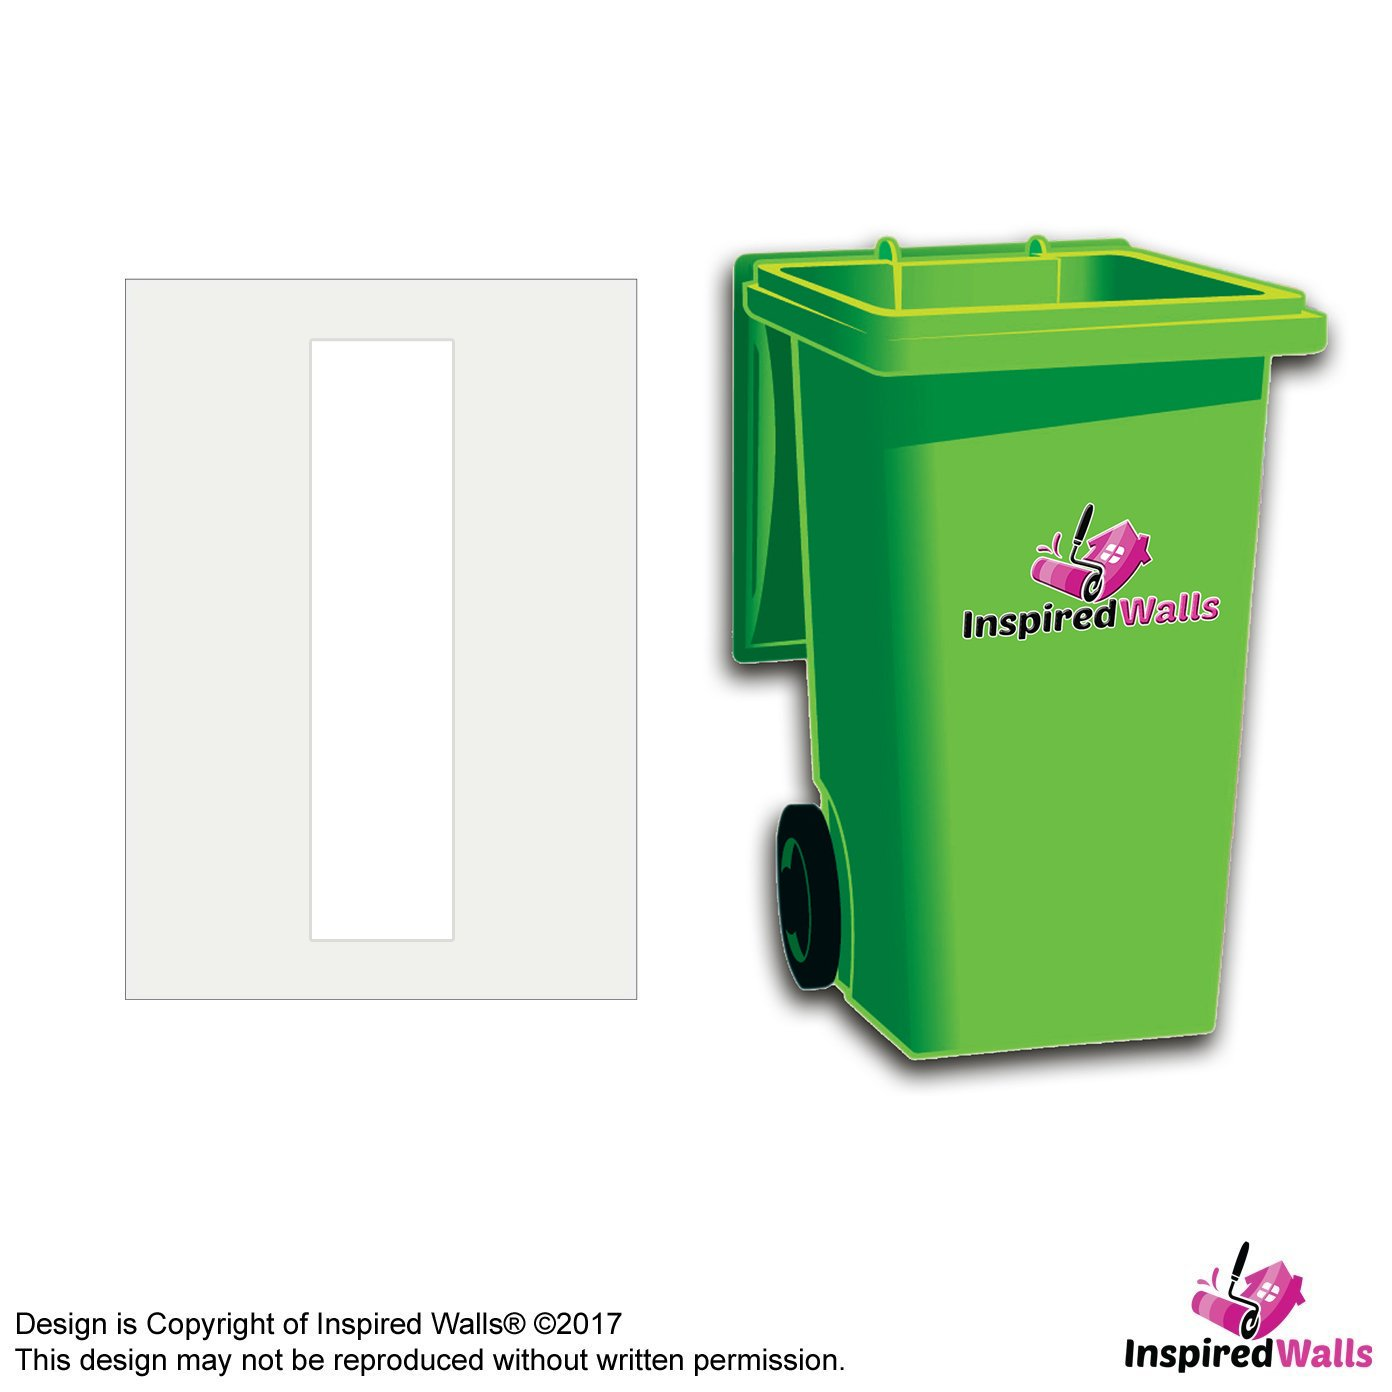 4 x Letter I White Wheelie Bin Sticker Vinyl Decal Sticker by Inspired Walls®